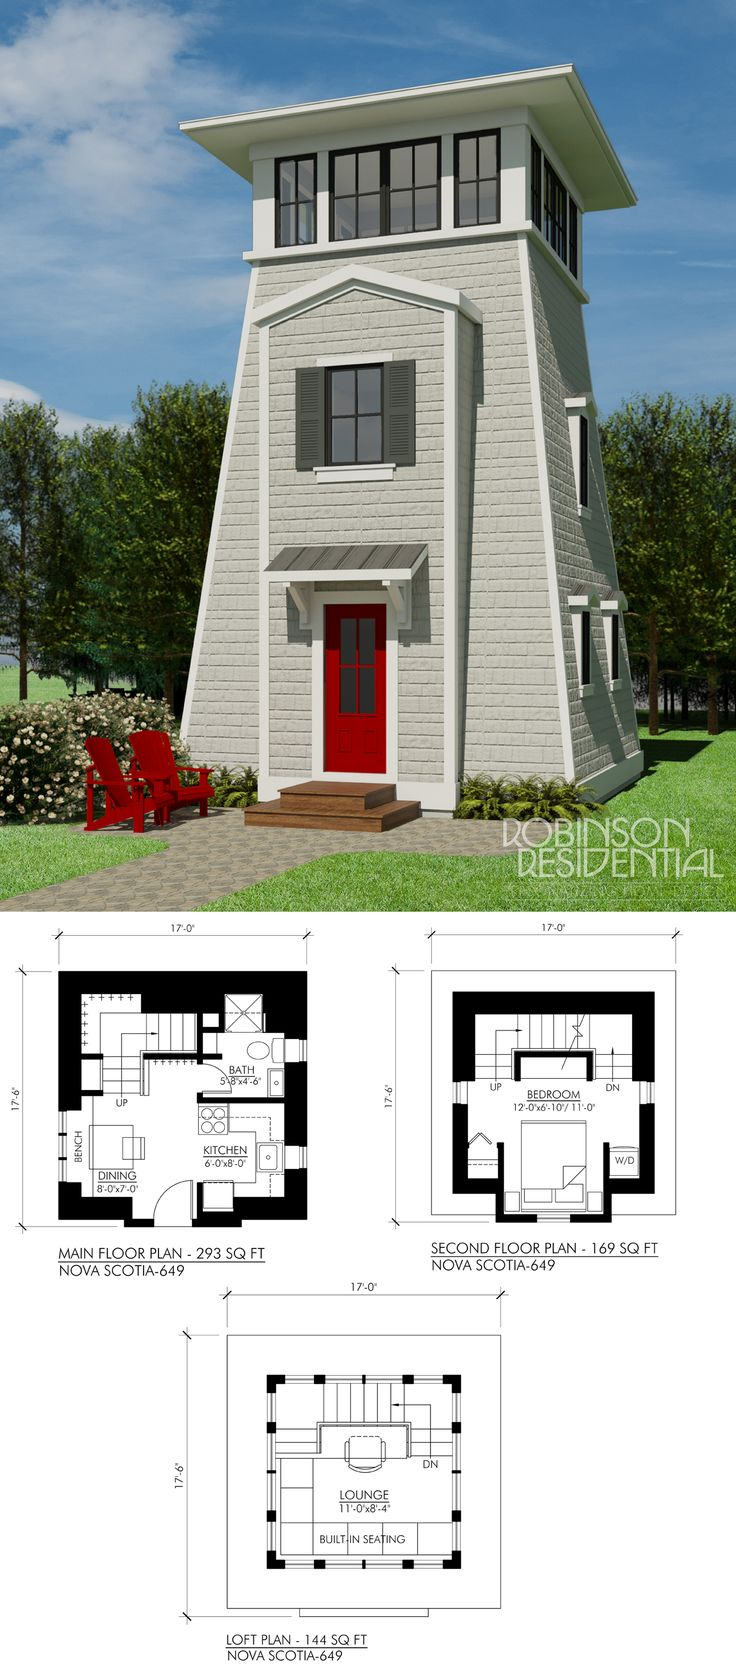 Best 25 tower house ideas on pinterest small wooden for Washington house plans